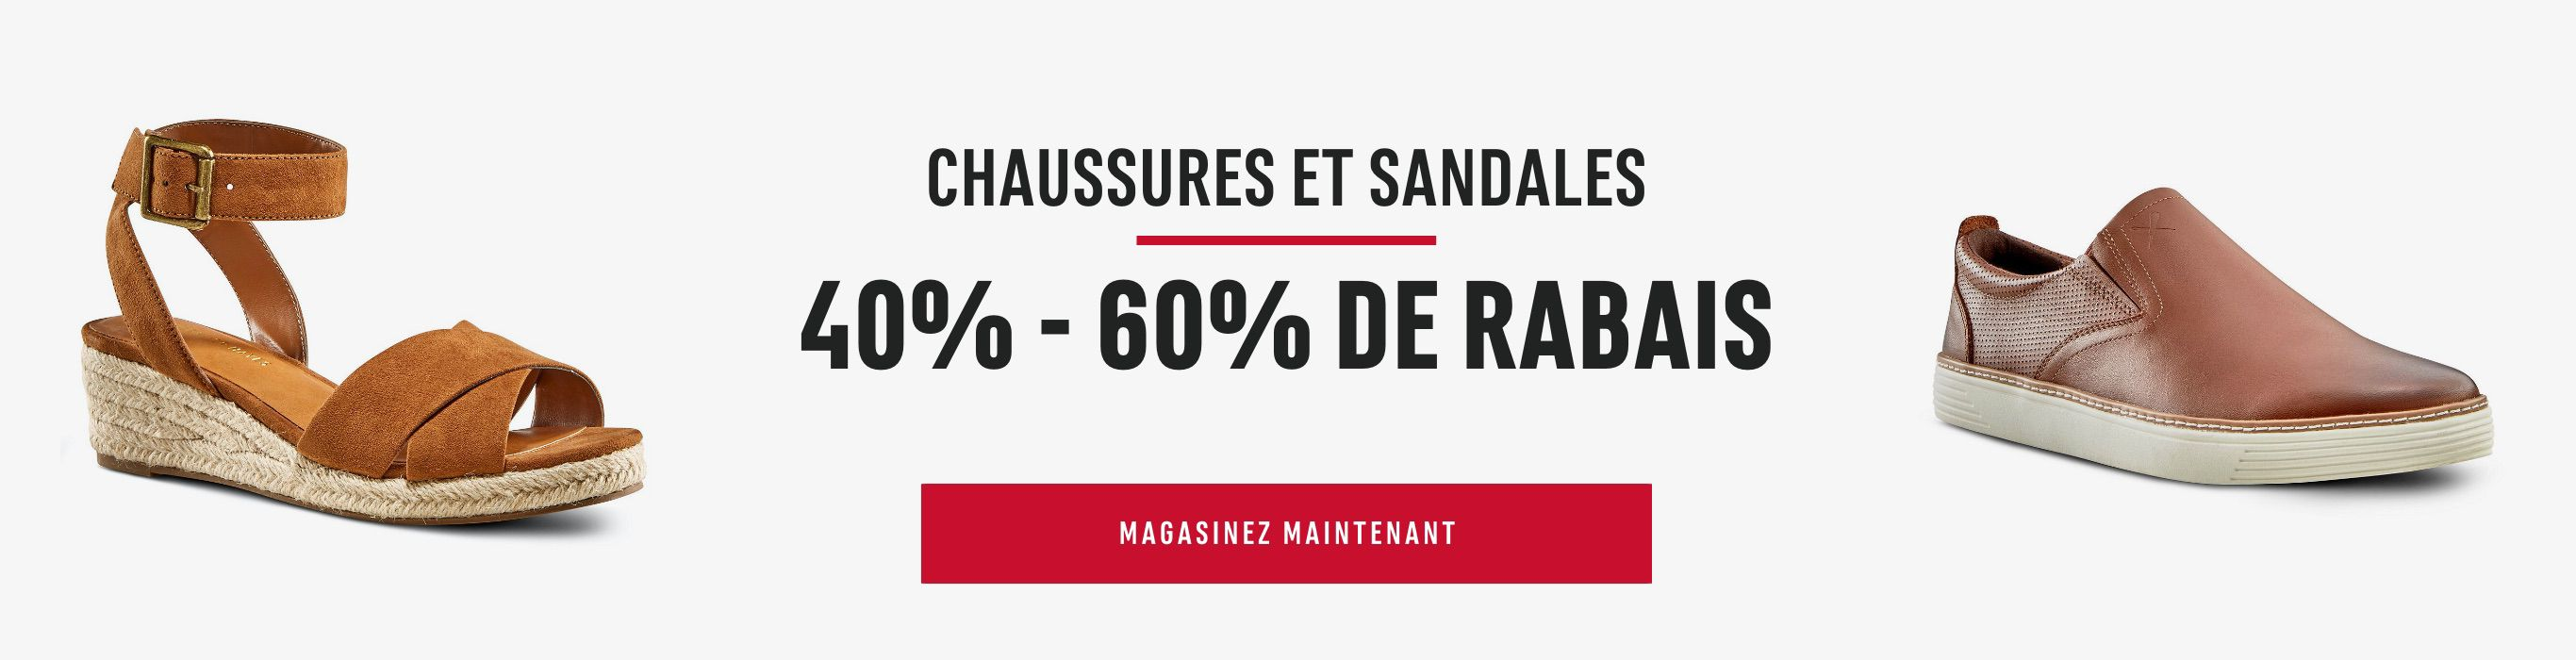 Shoes, Sneakers & Sandals: Save 40% - 60%